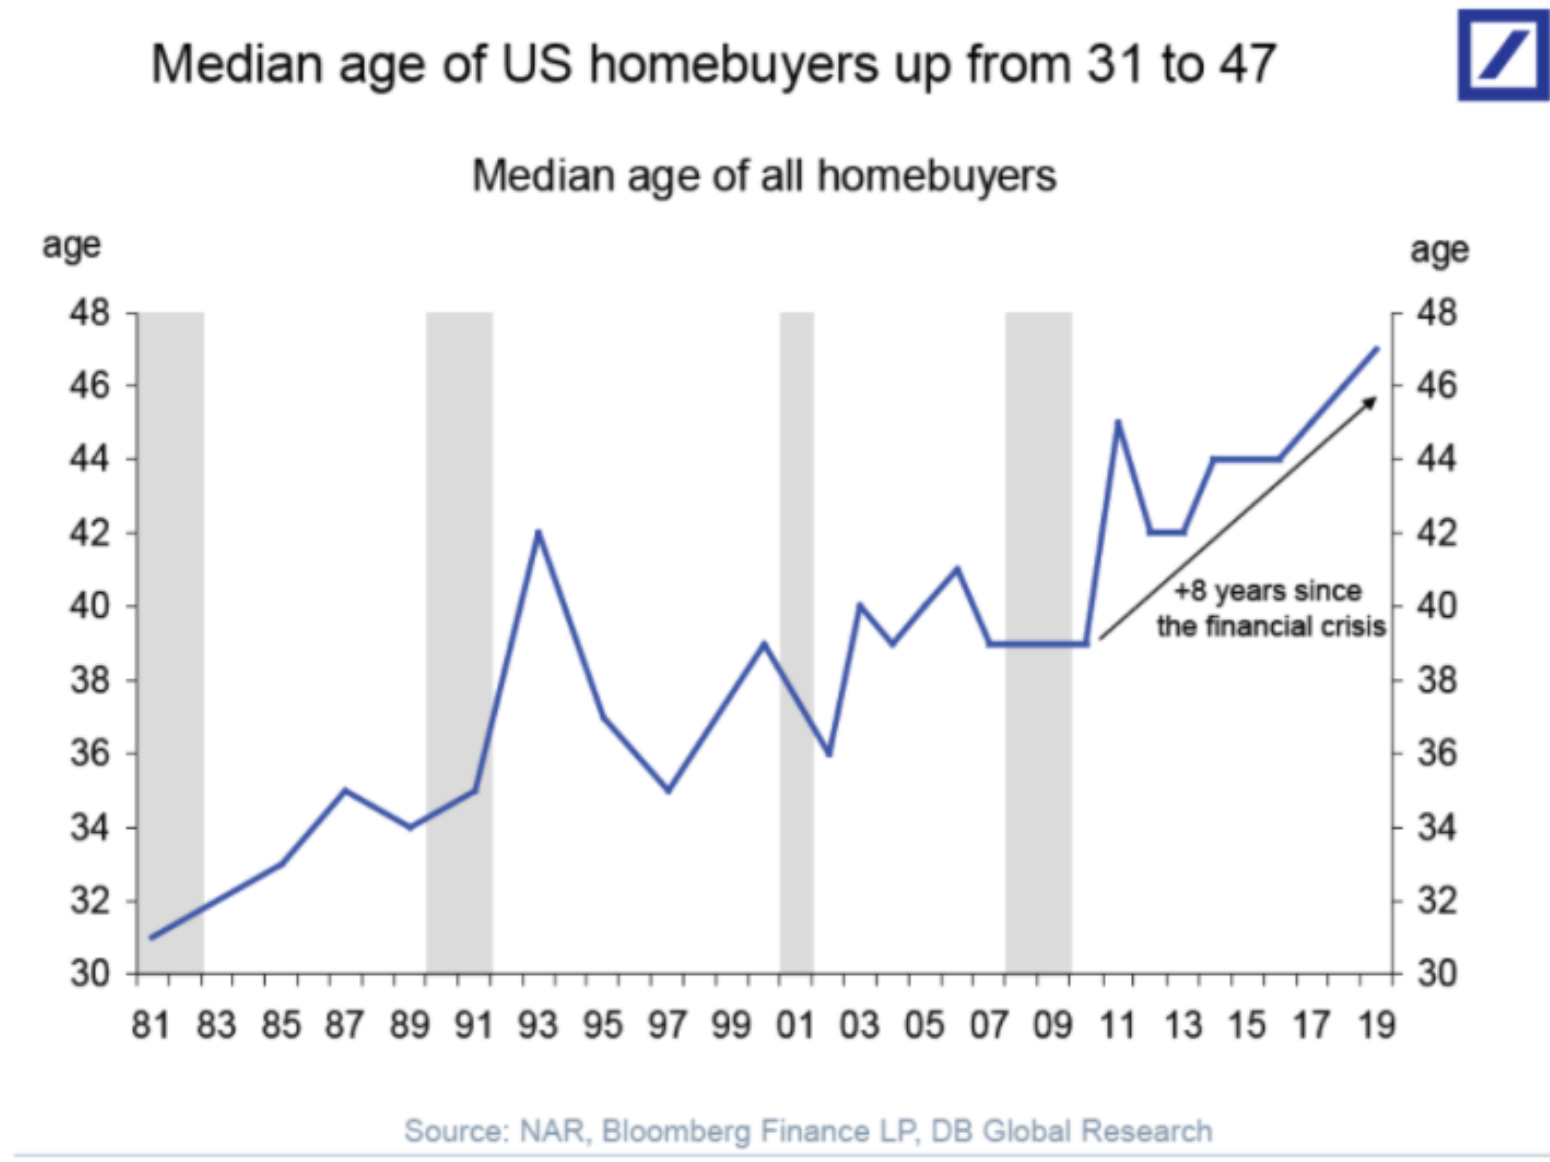 Median age of US homebuyers chart